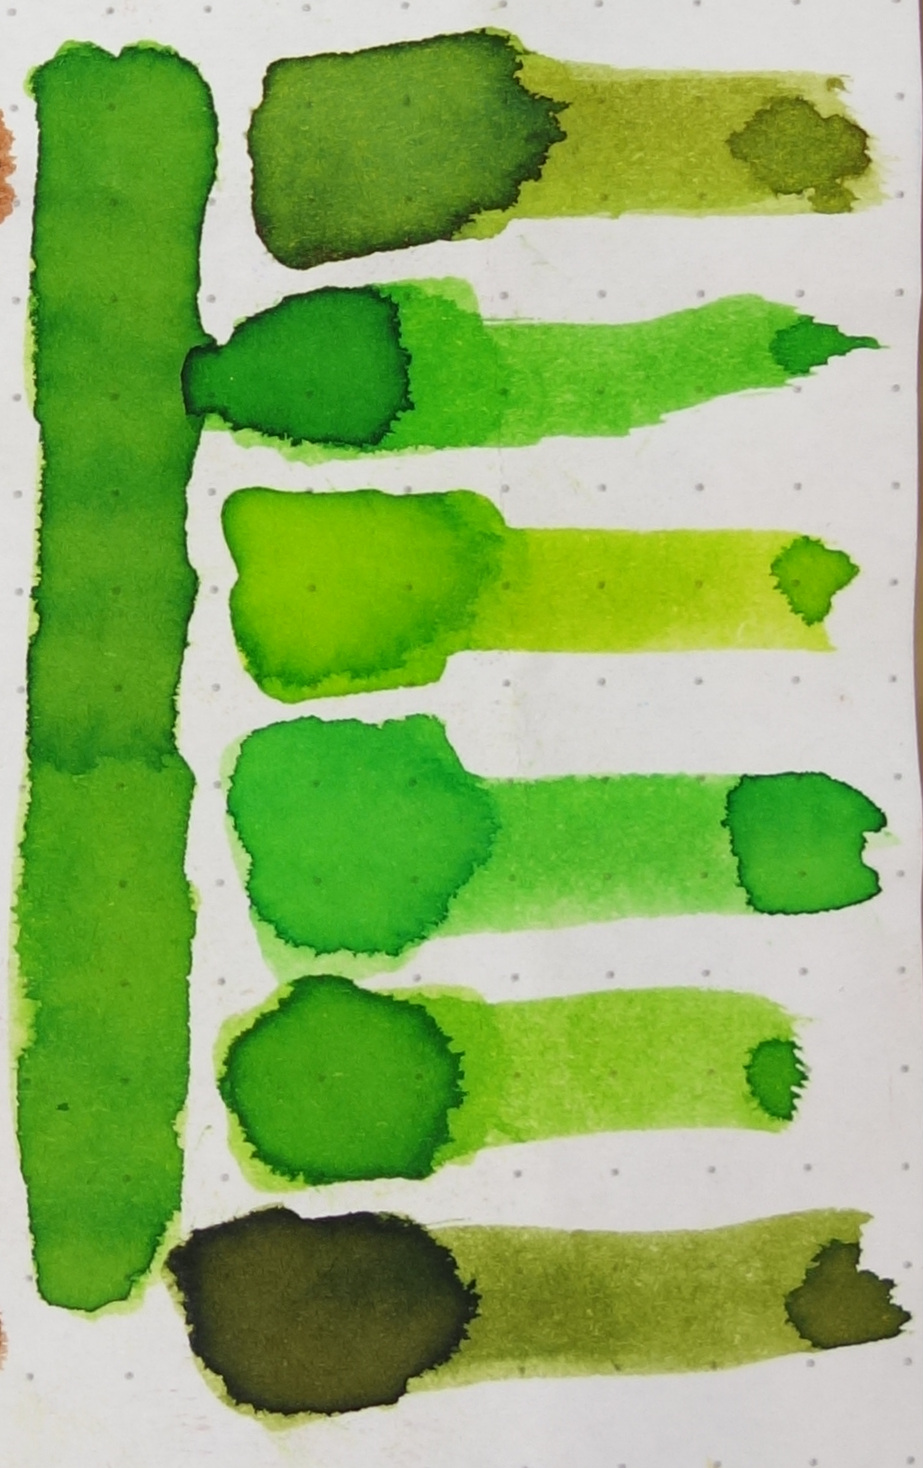 Top to bottom: 1) Iroshizuku Chiku-Rin; 2) Robert Oster Lime Green; 3) J. Herbin Vert Pré; 4) Robert Oster Light Green; 5) Diamine Meadow; and 6) Rohrer & Klingner Alt-Goldgrün